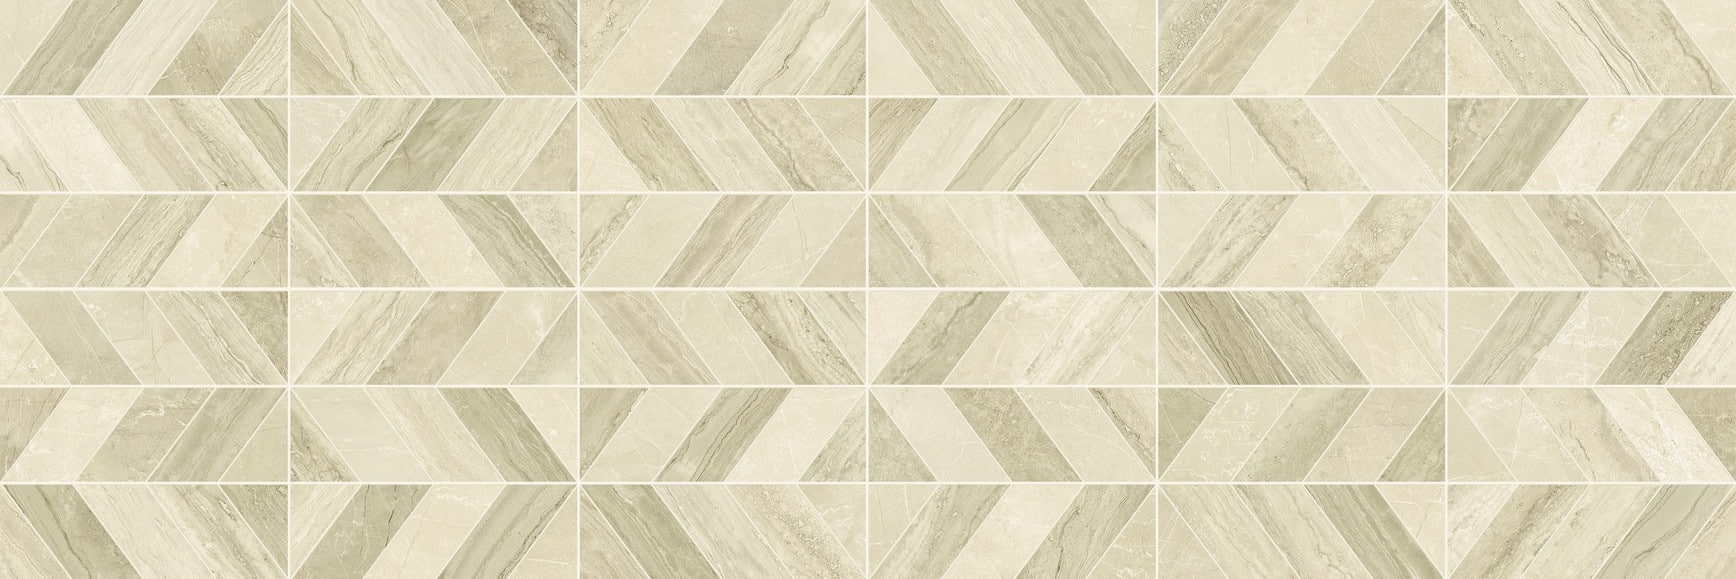 Marazzi Marbleplay Dekor Naos Travertino 30x90 cm M4PM-